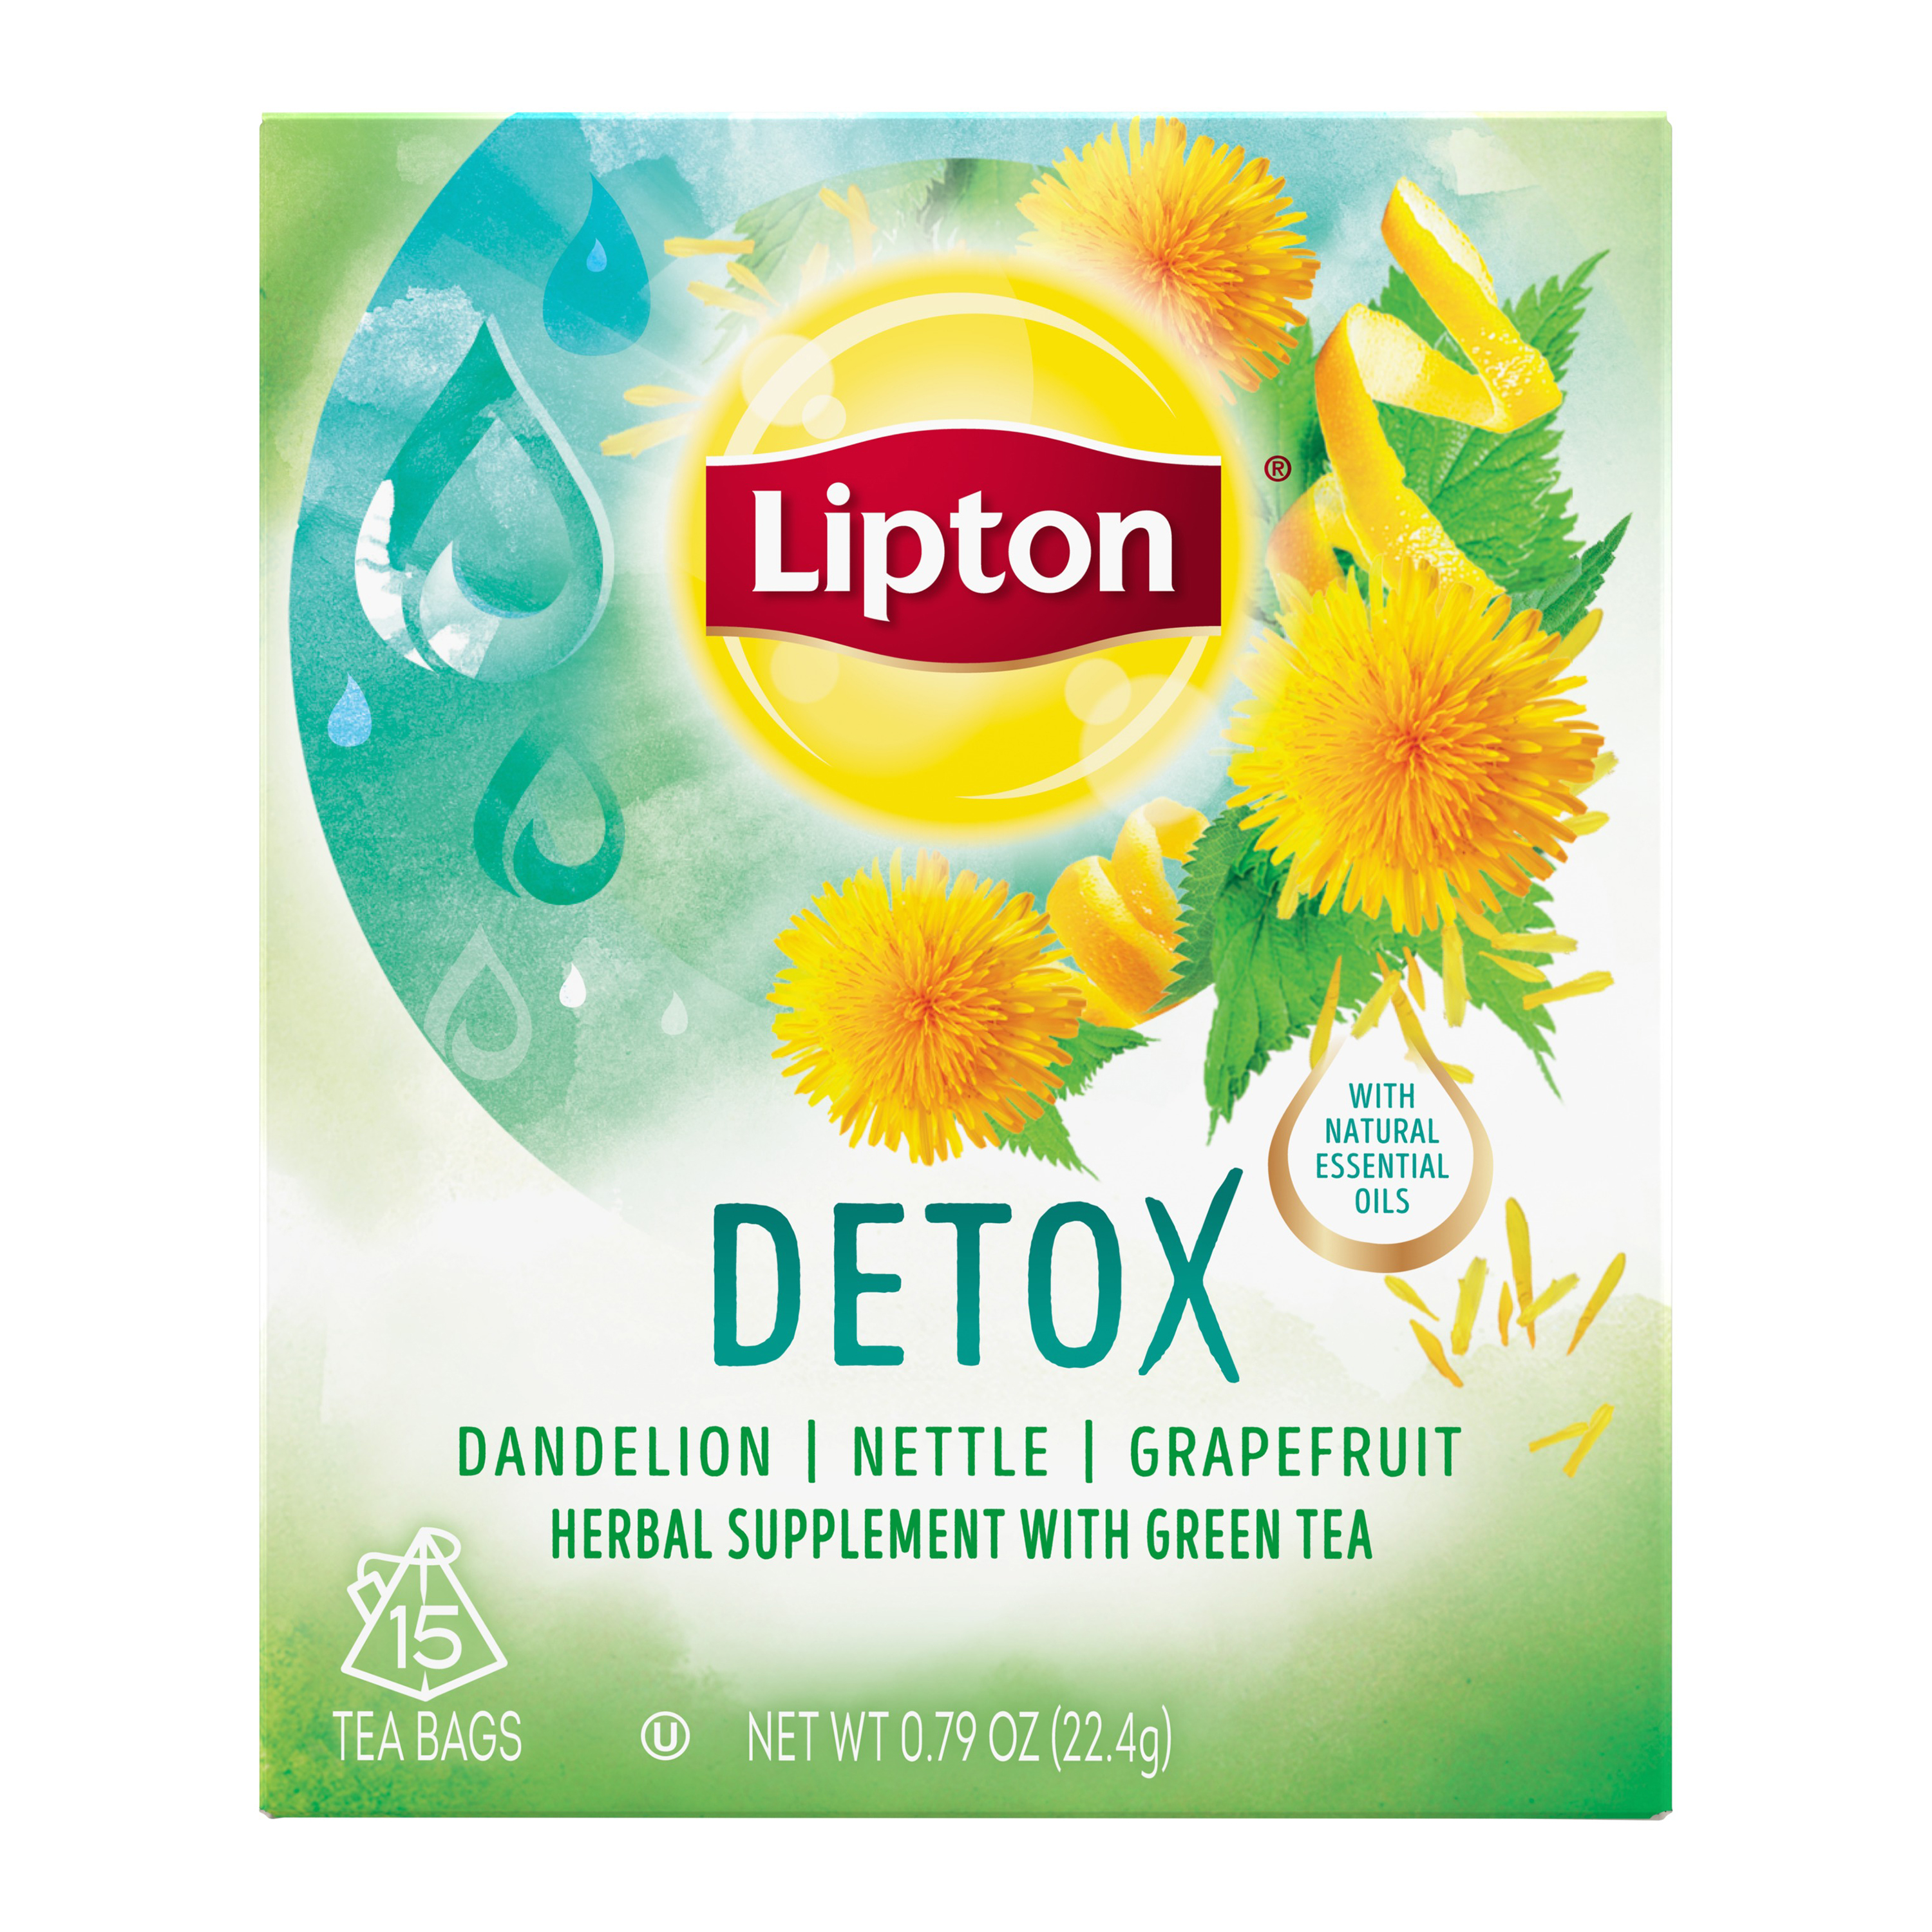 (2 pack) Lipton Herbal Supplement with Green Tea Detox, Tea Bags, 15 Ct